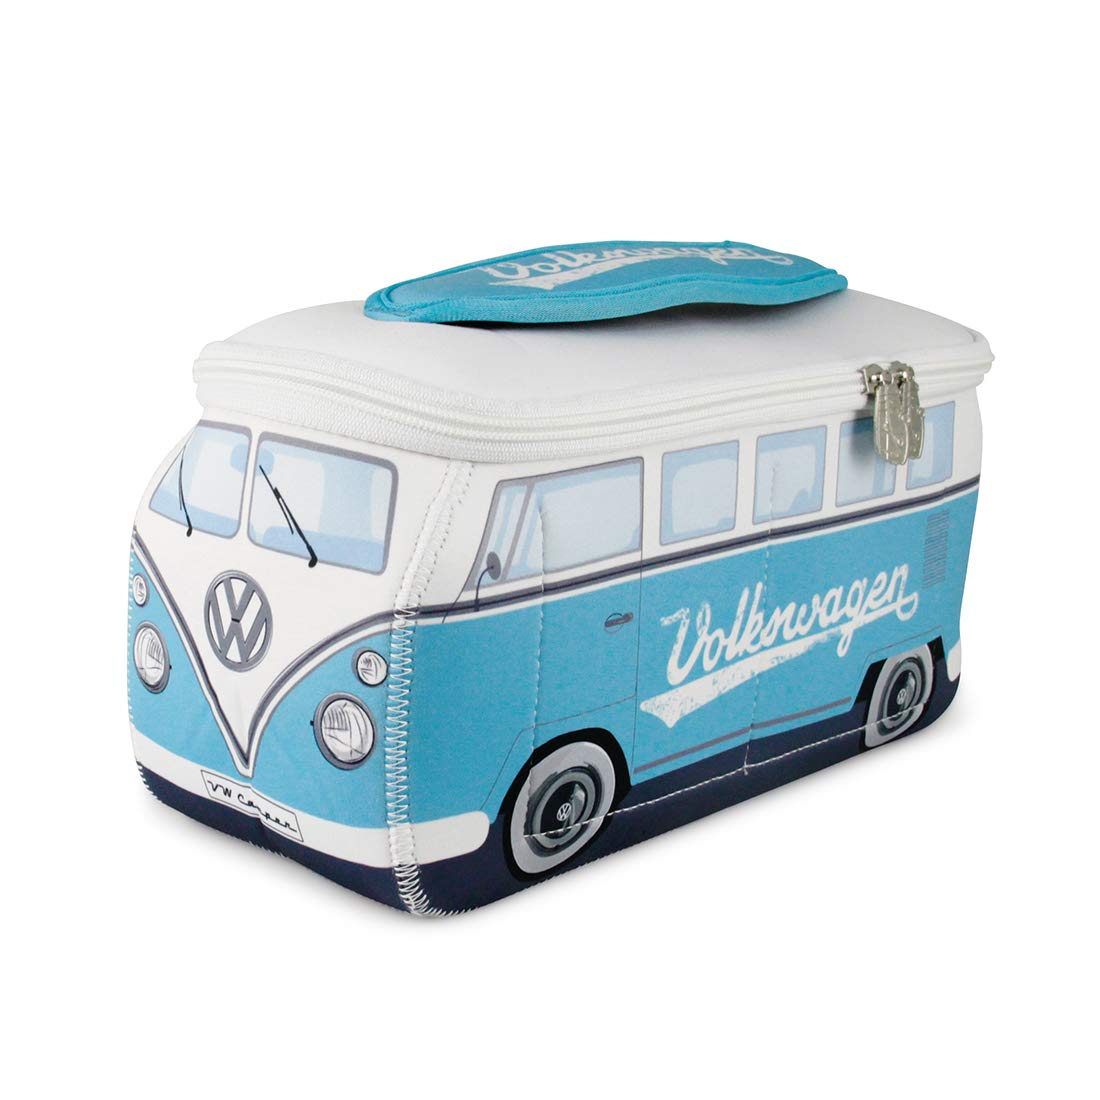 BRISA VW Collection VW T1 Bus 3D Neoprene Universal Bag - Turquoise